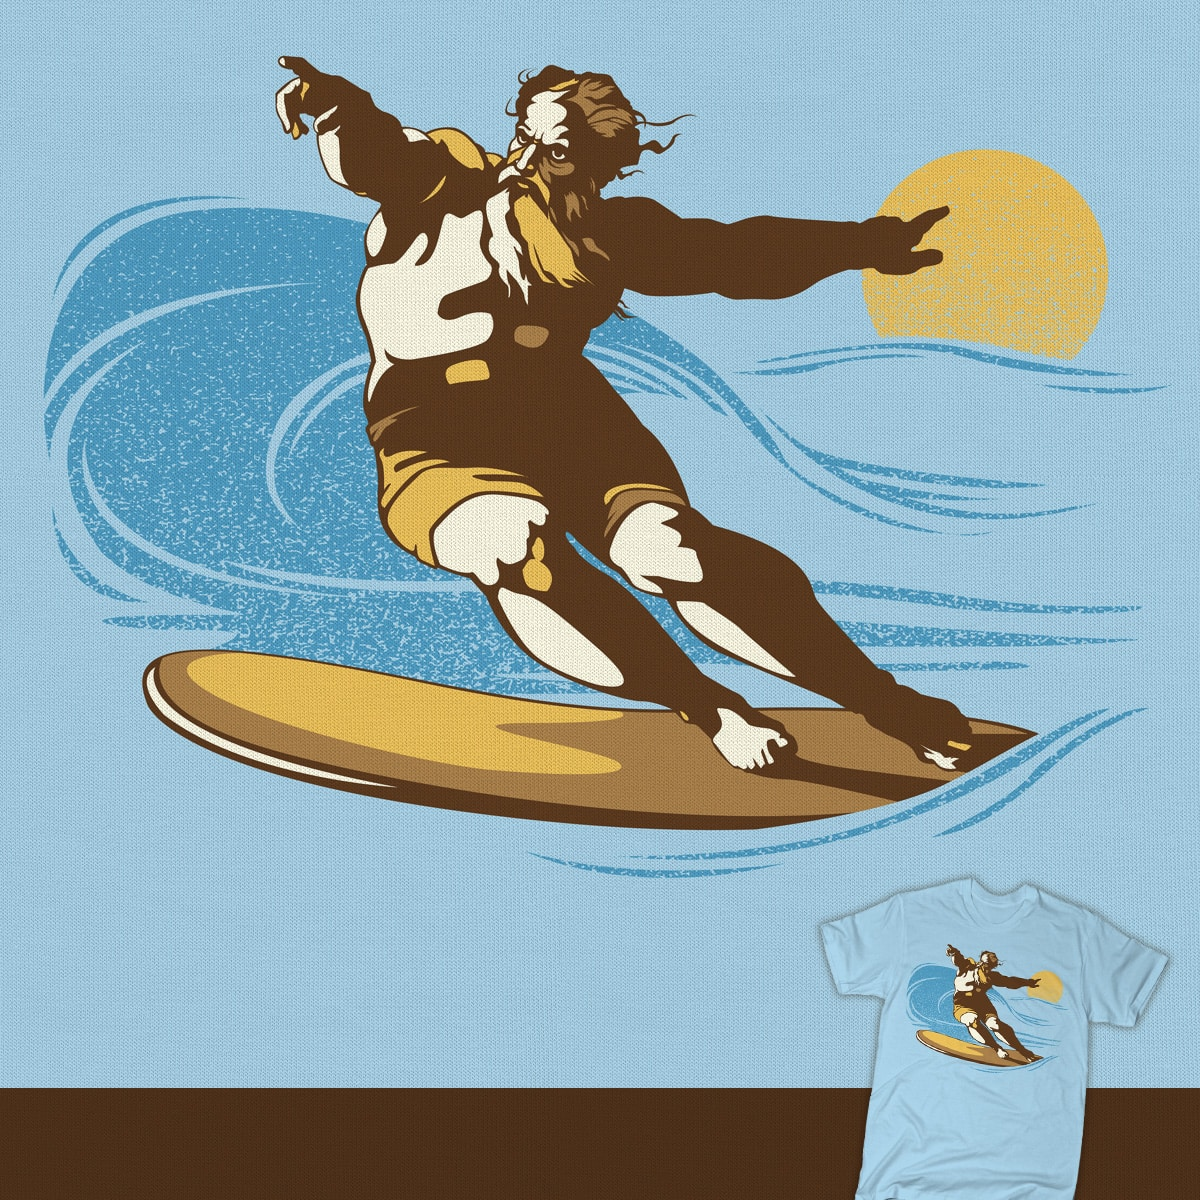 On The 8th Day, God Surfed by tomburns on Threadless